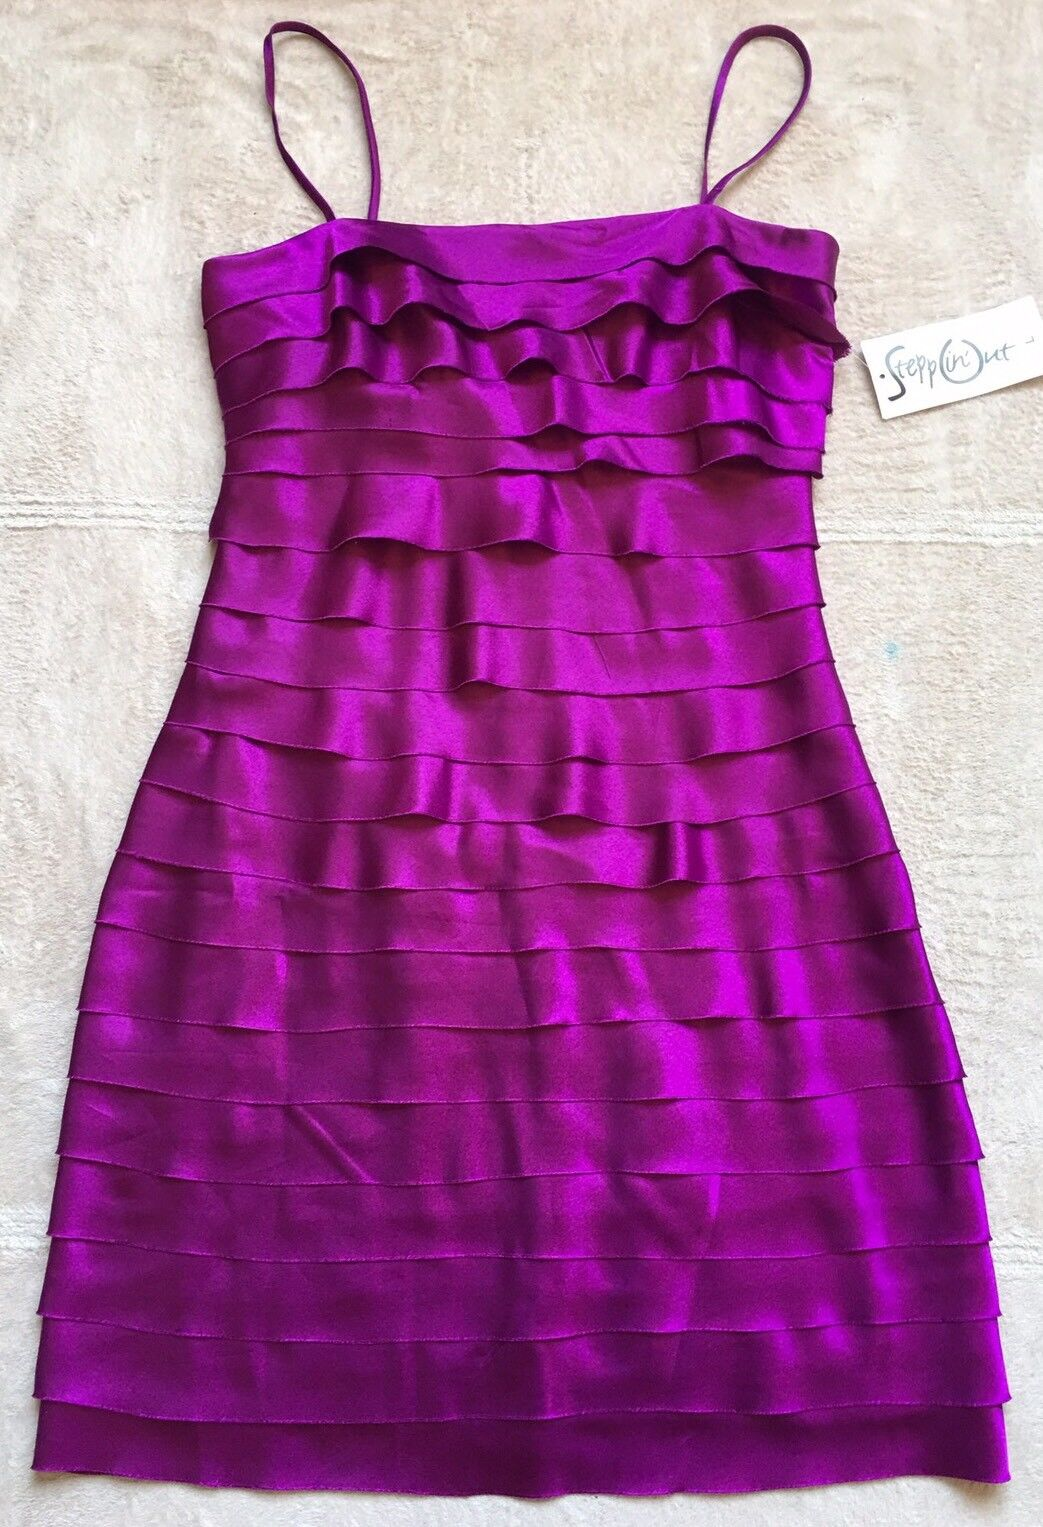 Steppin' Out Sleeveless Spaghetti Strap PROM Dress JunIors Sz LARGE, Purple, NWT